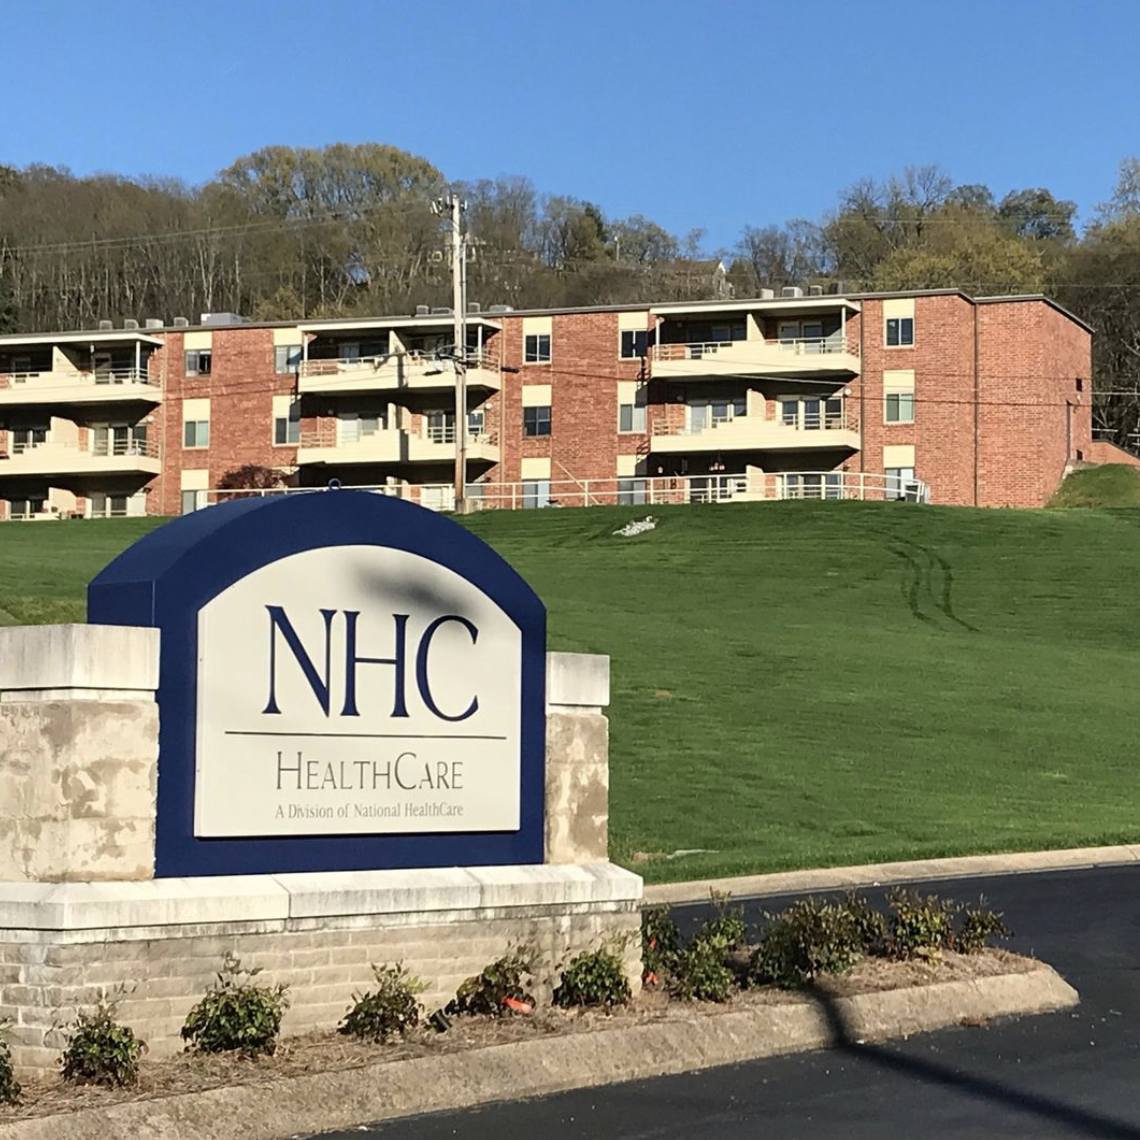 NHC Chattanooga Nursing Home Confirms Patient Tested Positive for COVID-19 Image